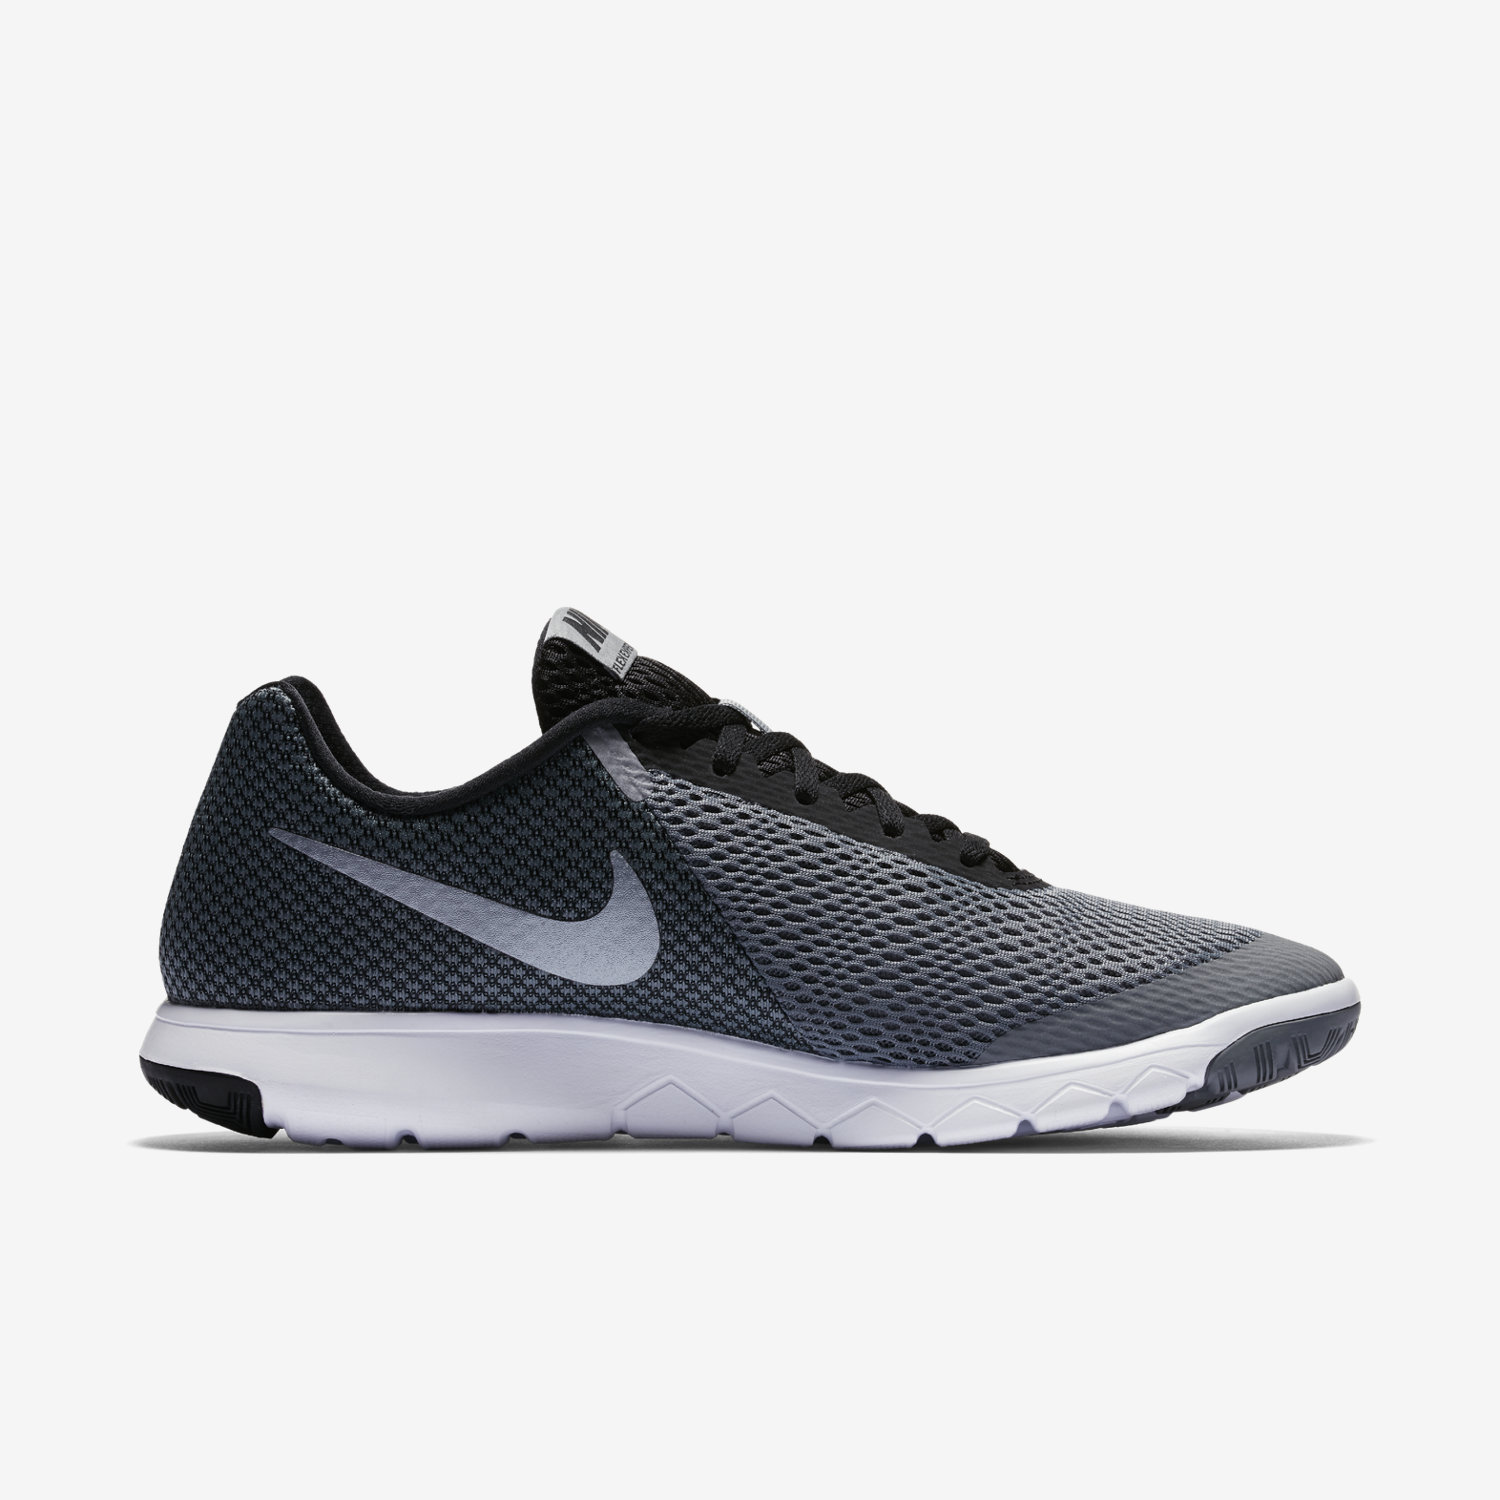 half off 7a9e7 1603c Nike Air Max Wholesale Uk